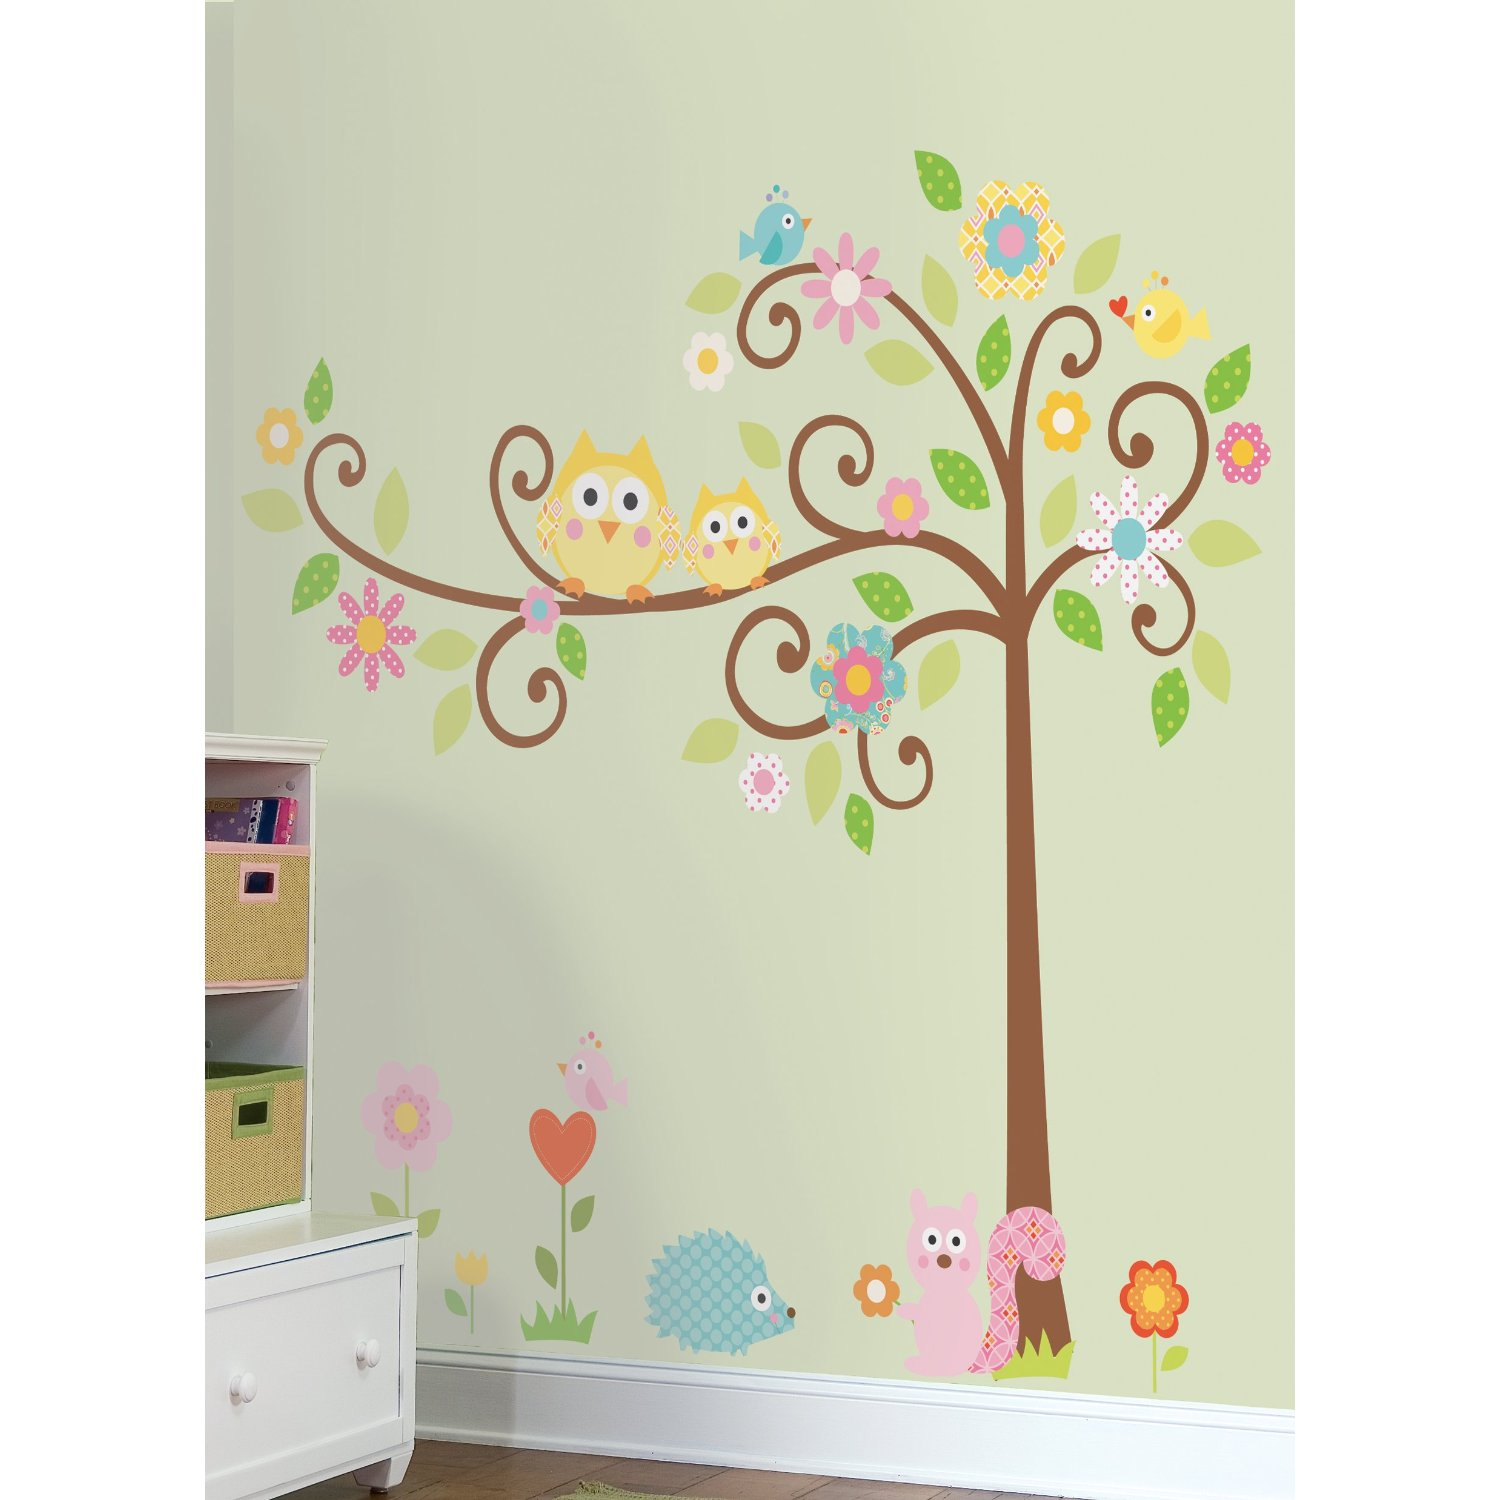 Nursery room ideas nursery wall decals Nursery wall ideas